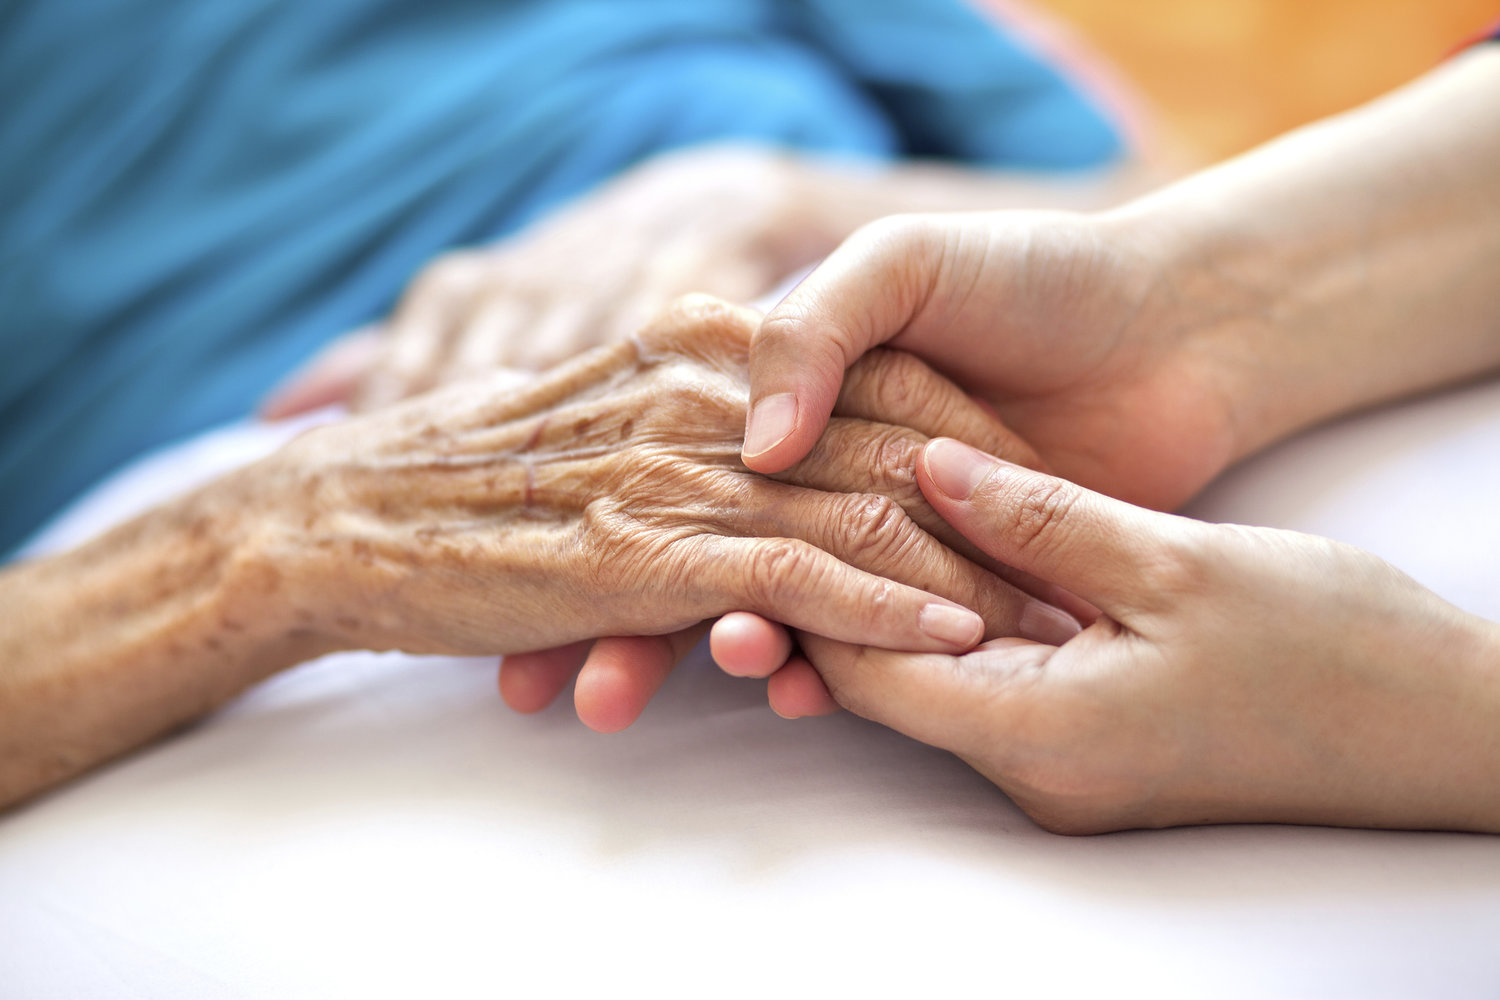 Elderly Care - In Home Senior Care and Elder Care Services